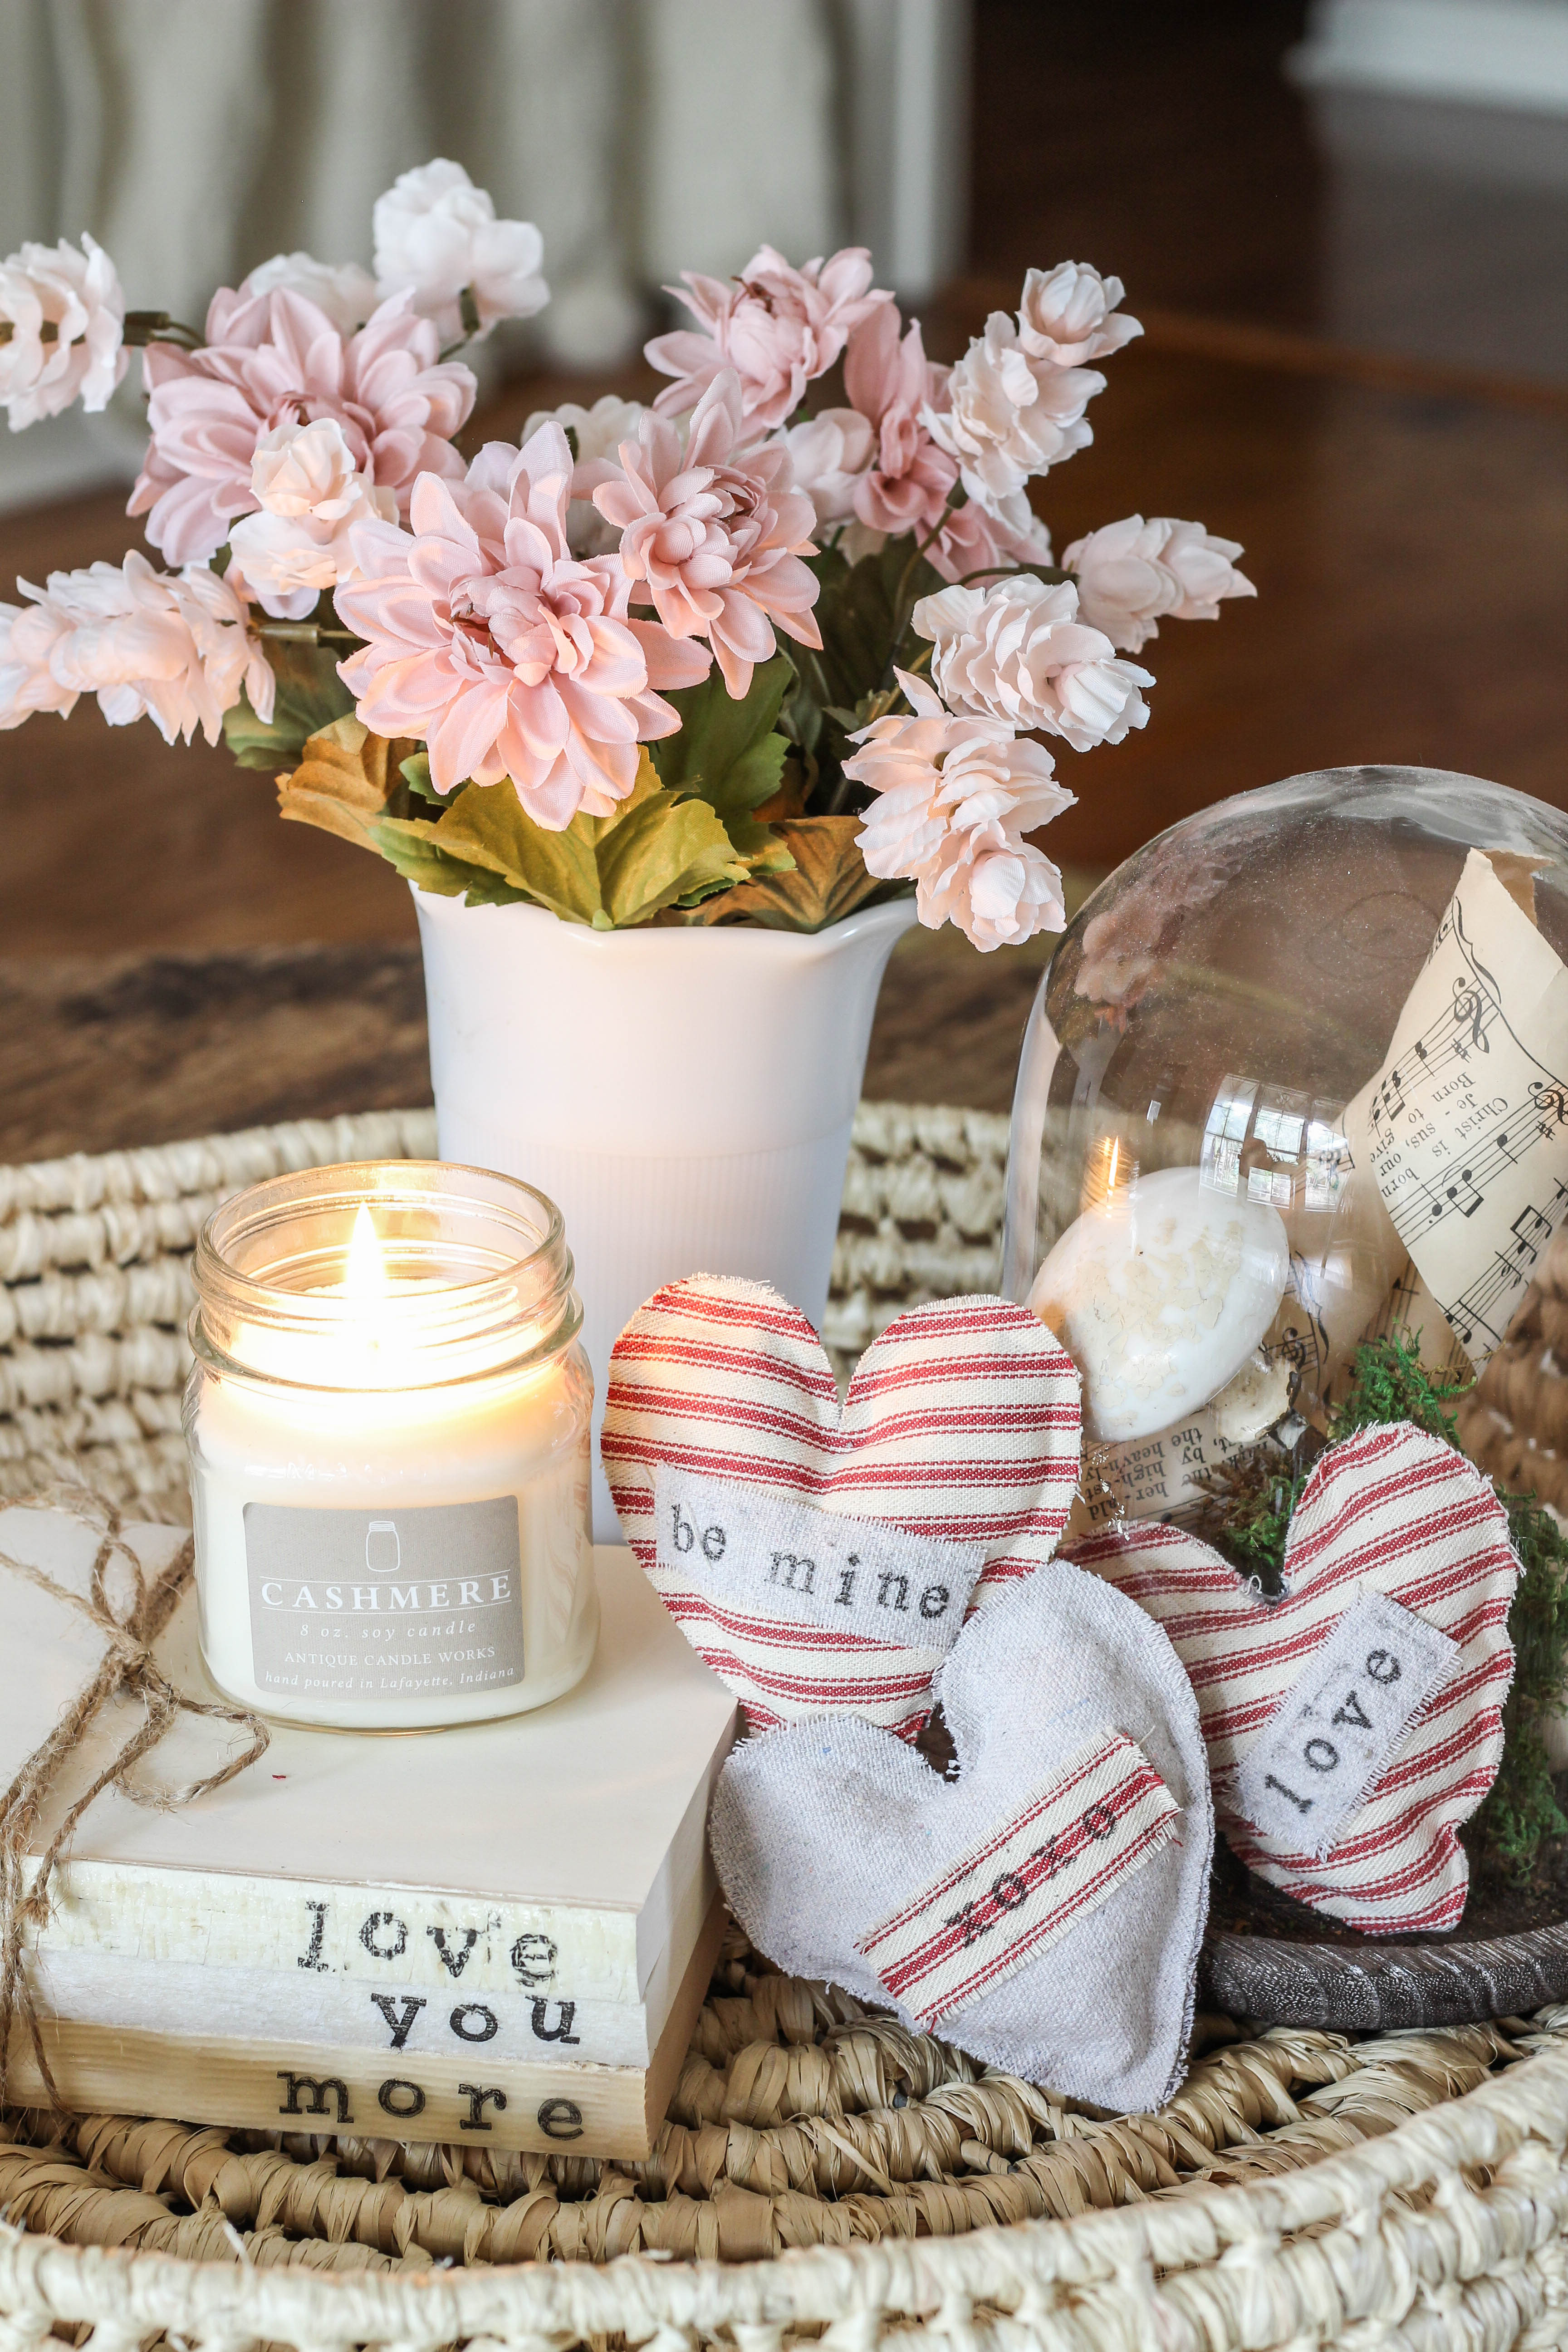 Learn how you can make Valentine DIY lavender sachets with supplies you already have at home. These make great gifts for friends and teachers!